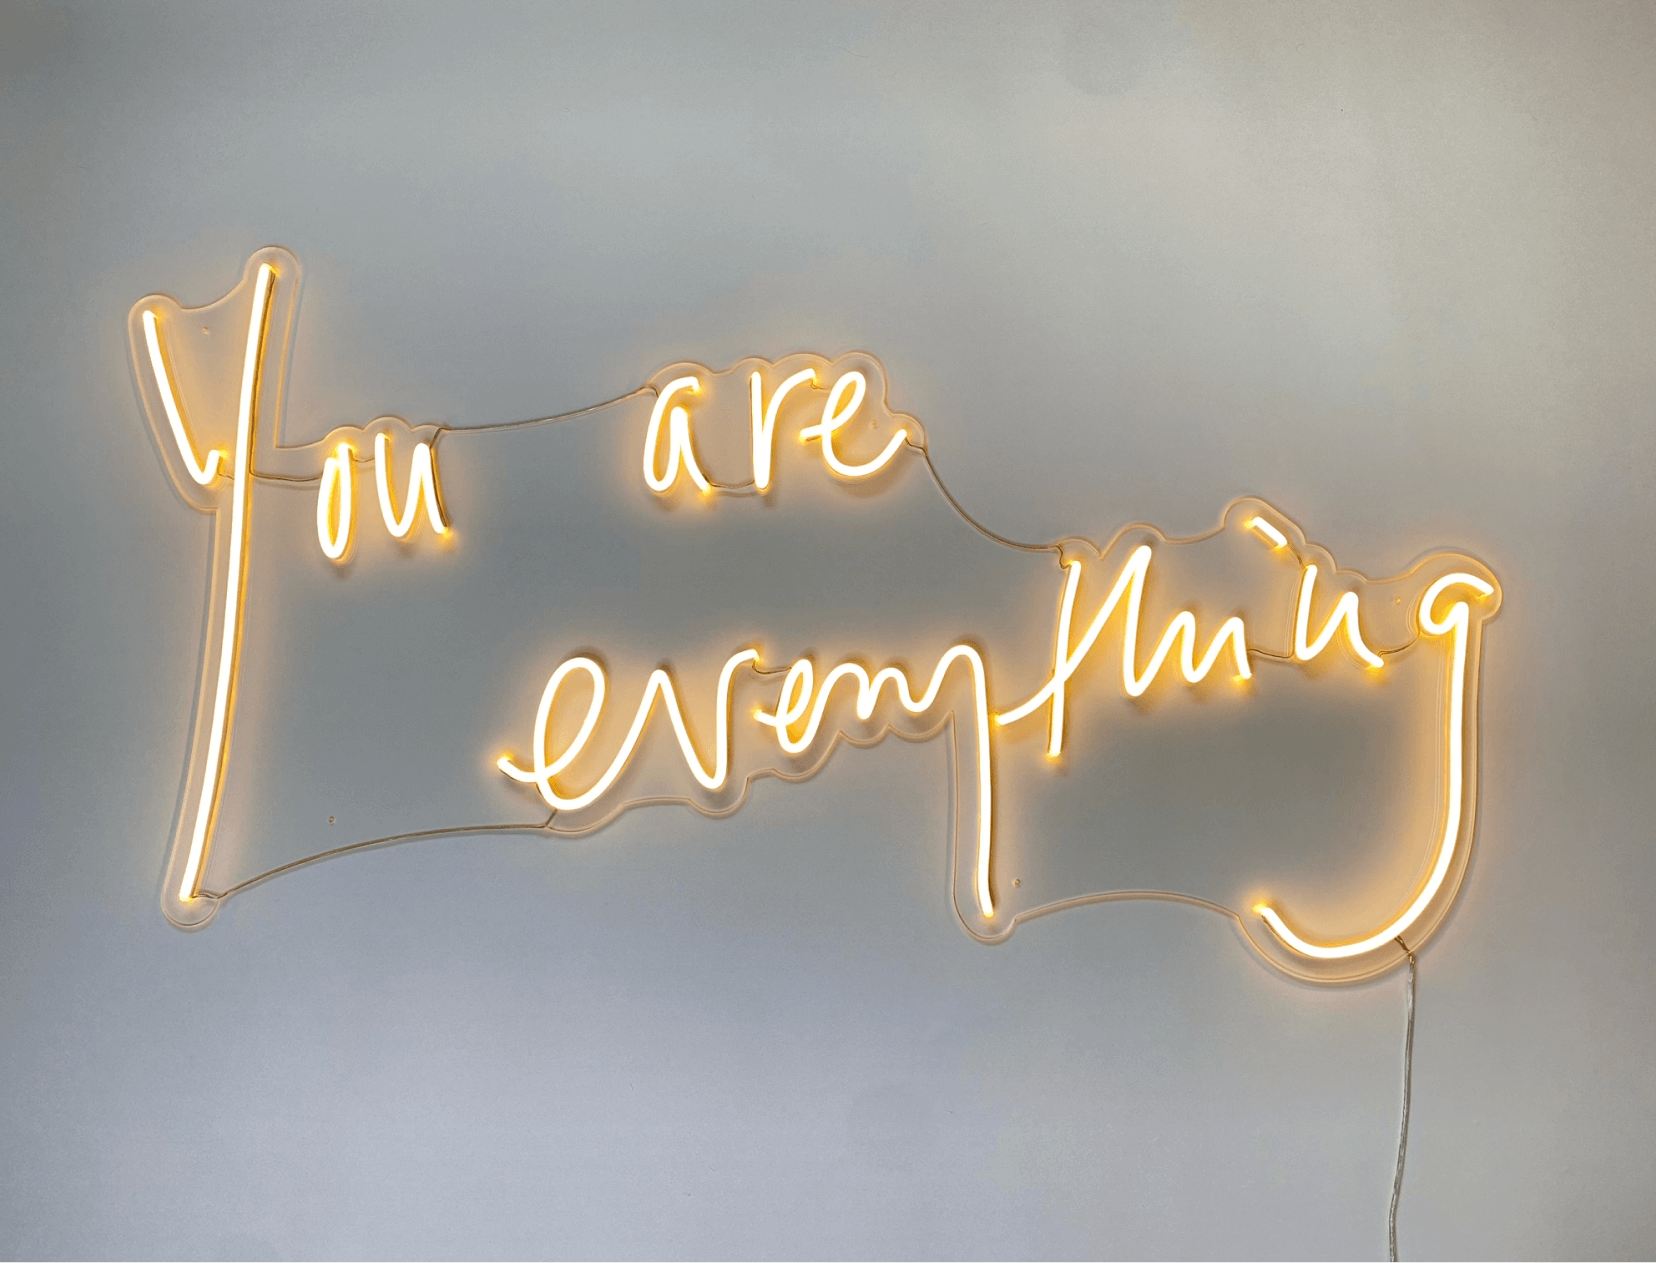 you are everything neon sign